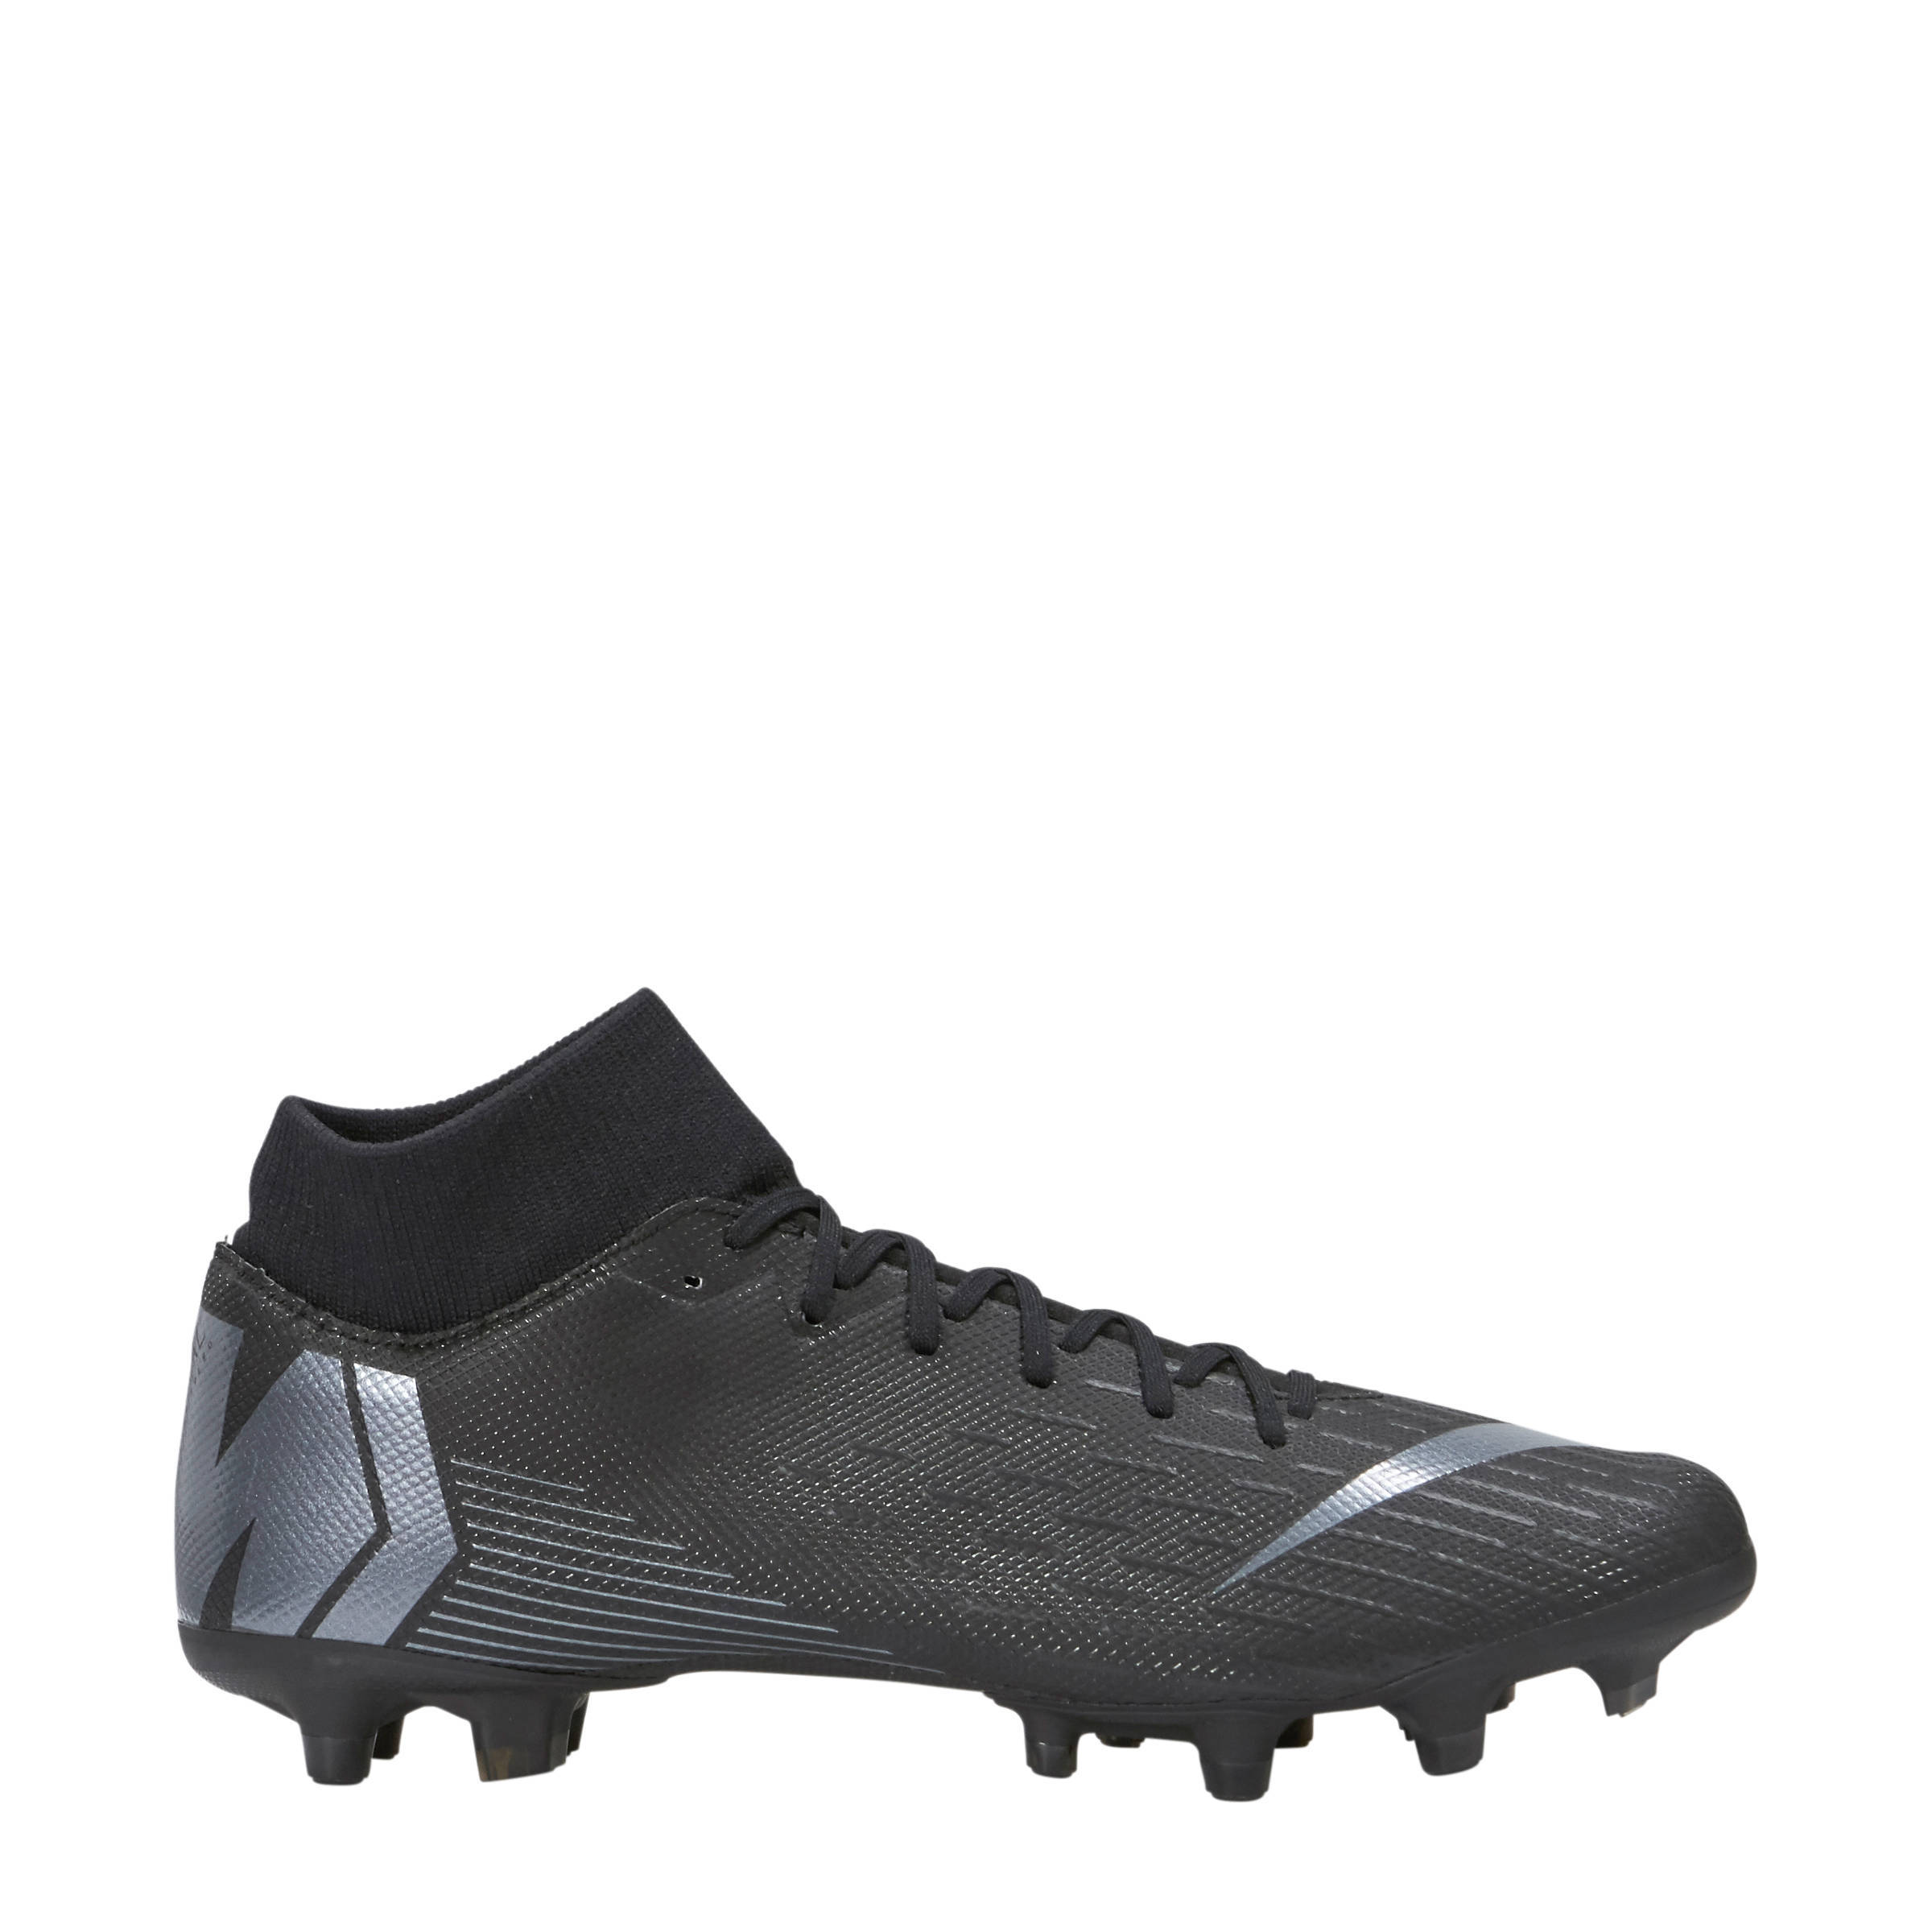 new arrival 33ed8 a0a19 Mercurial Superfly 6 Academy FG/MG voetbalschoenen